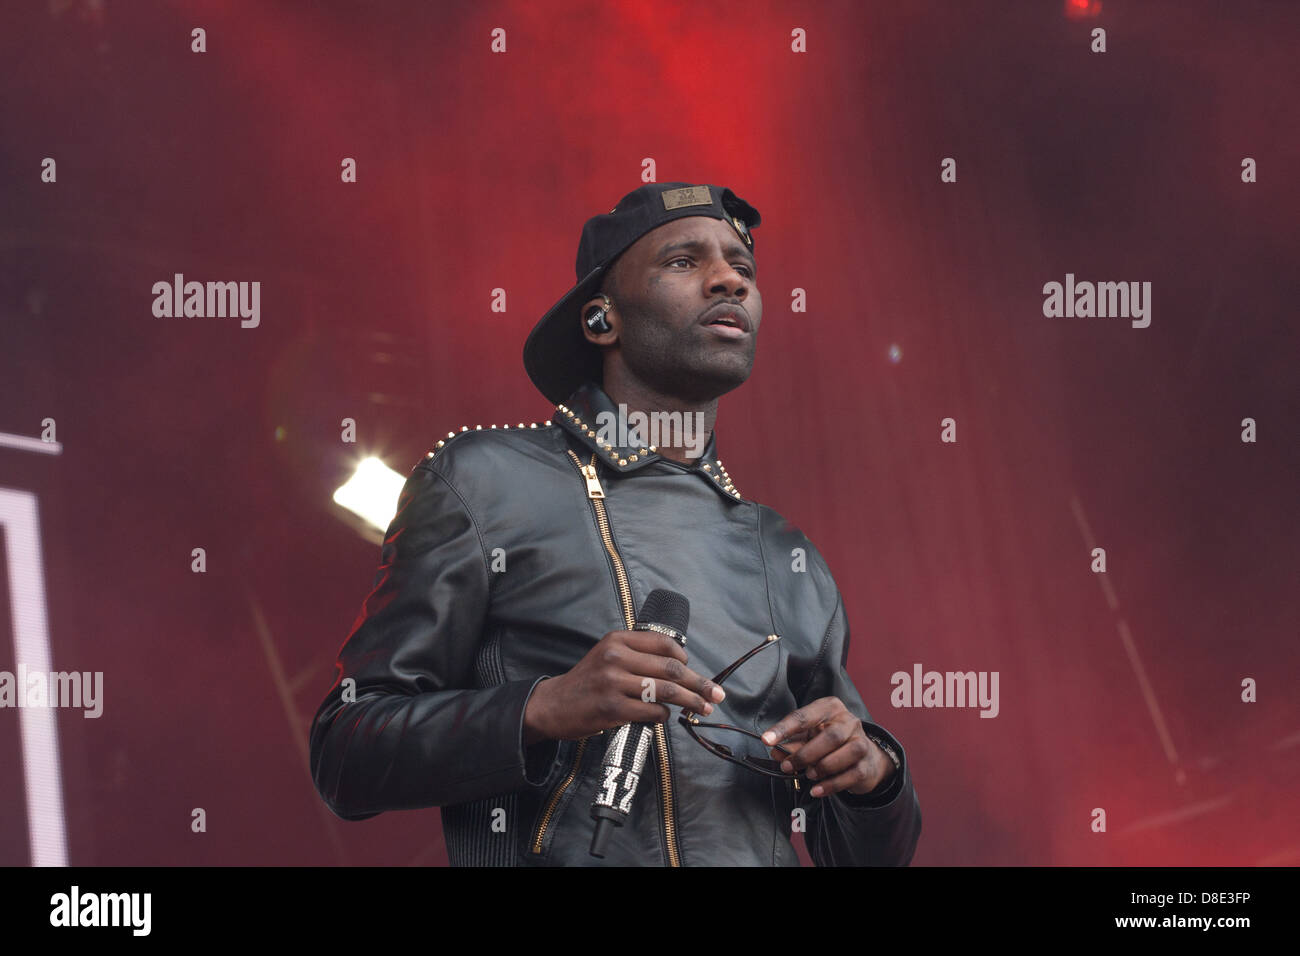 Rapper Wretch 32 performing at Radio1's Big Weekend 2013 in Derry, Northern Ireland. - Stock Image